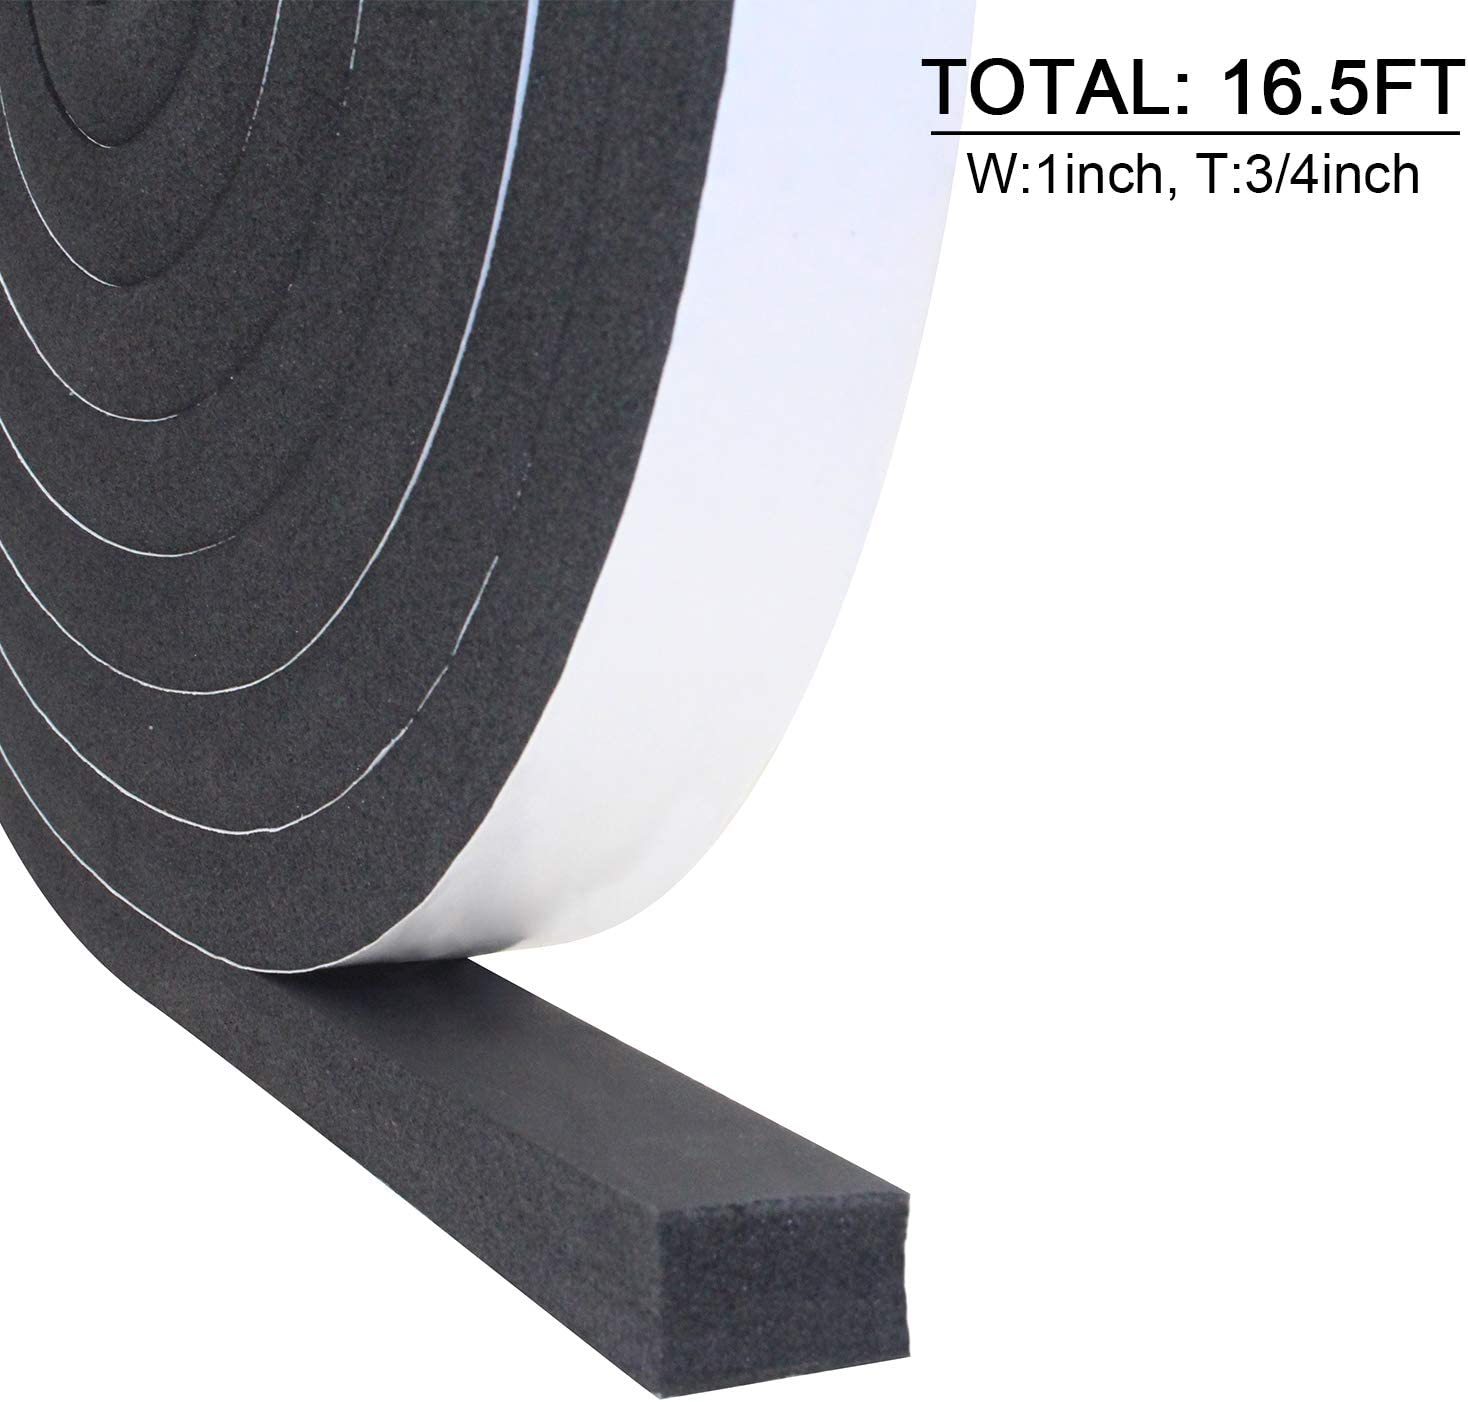 1//2In x 3//8In x 16.5Ft Foam Insulation Tape Weather Stripping Door Seal Strip for Doors and Windows,Sliding Door,Sound Proof Soundproofing Door Seal,Weatherstrip,Air Conditioning Seal Strip